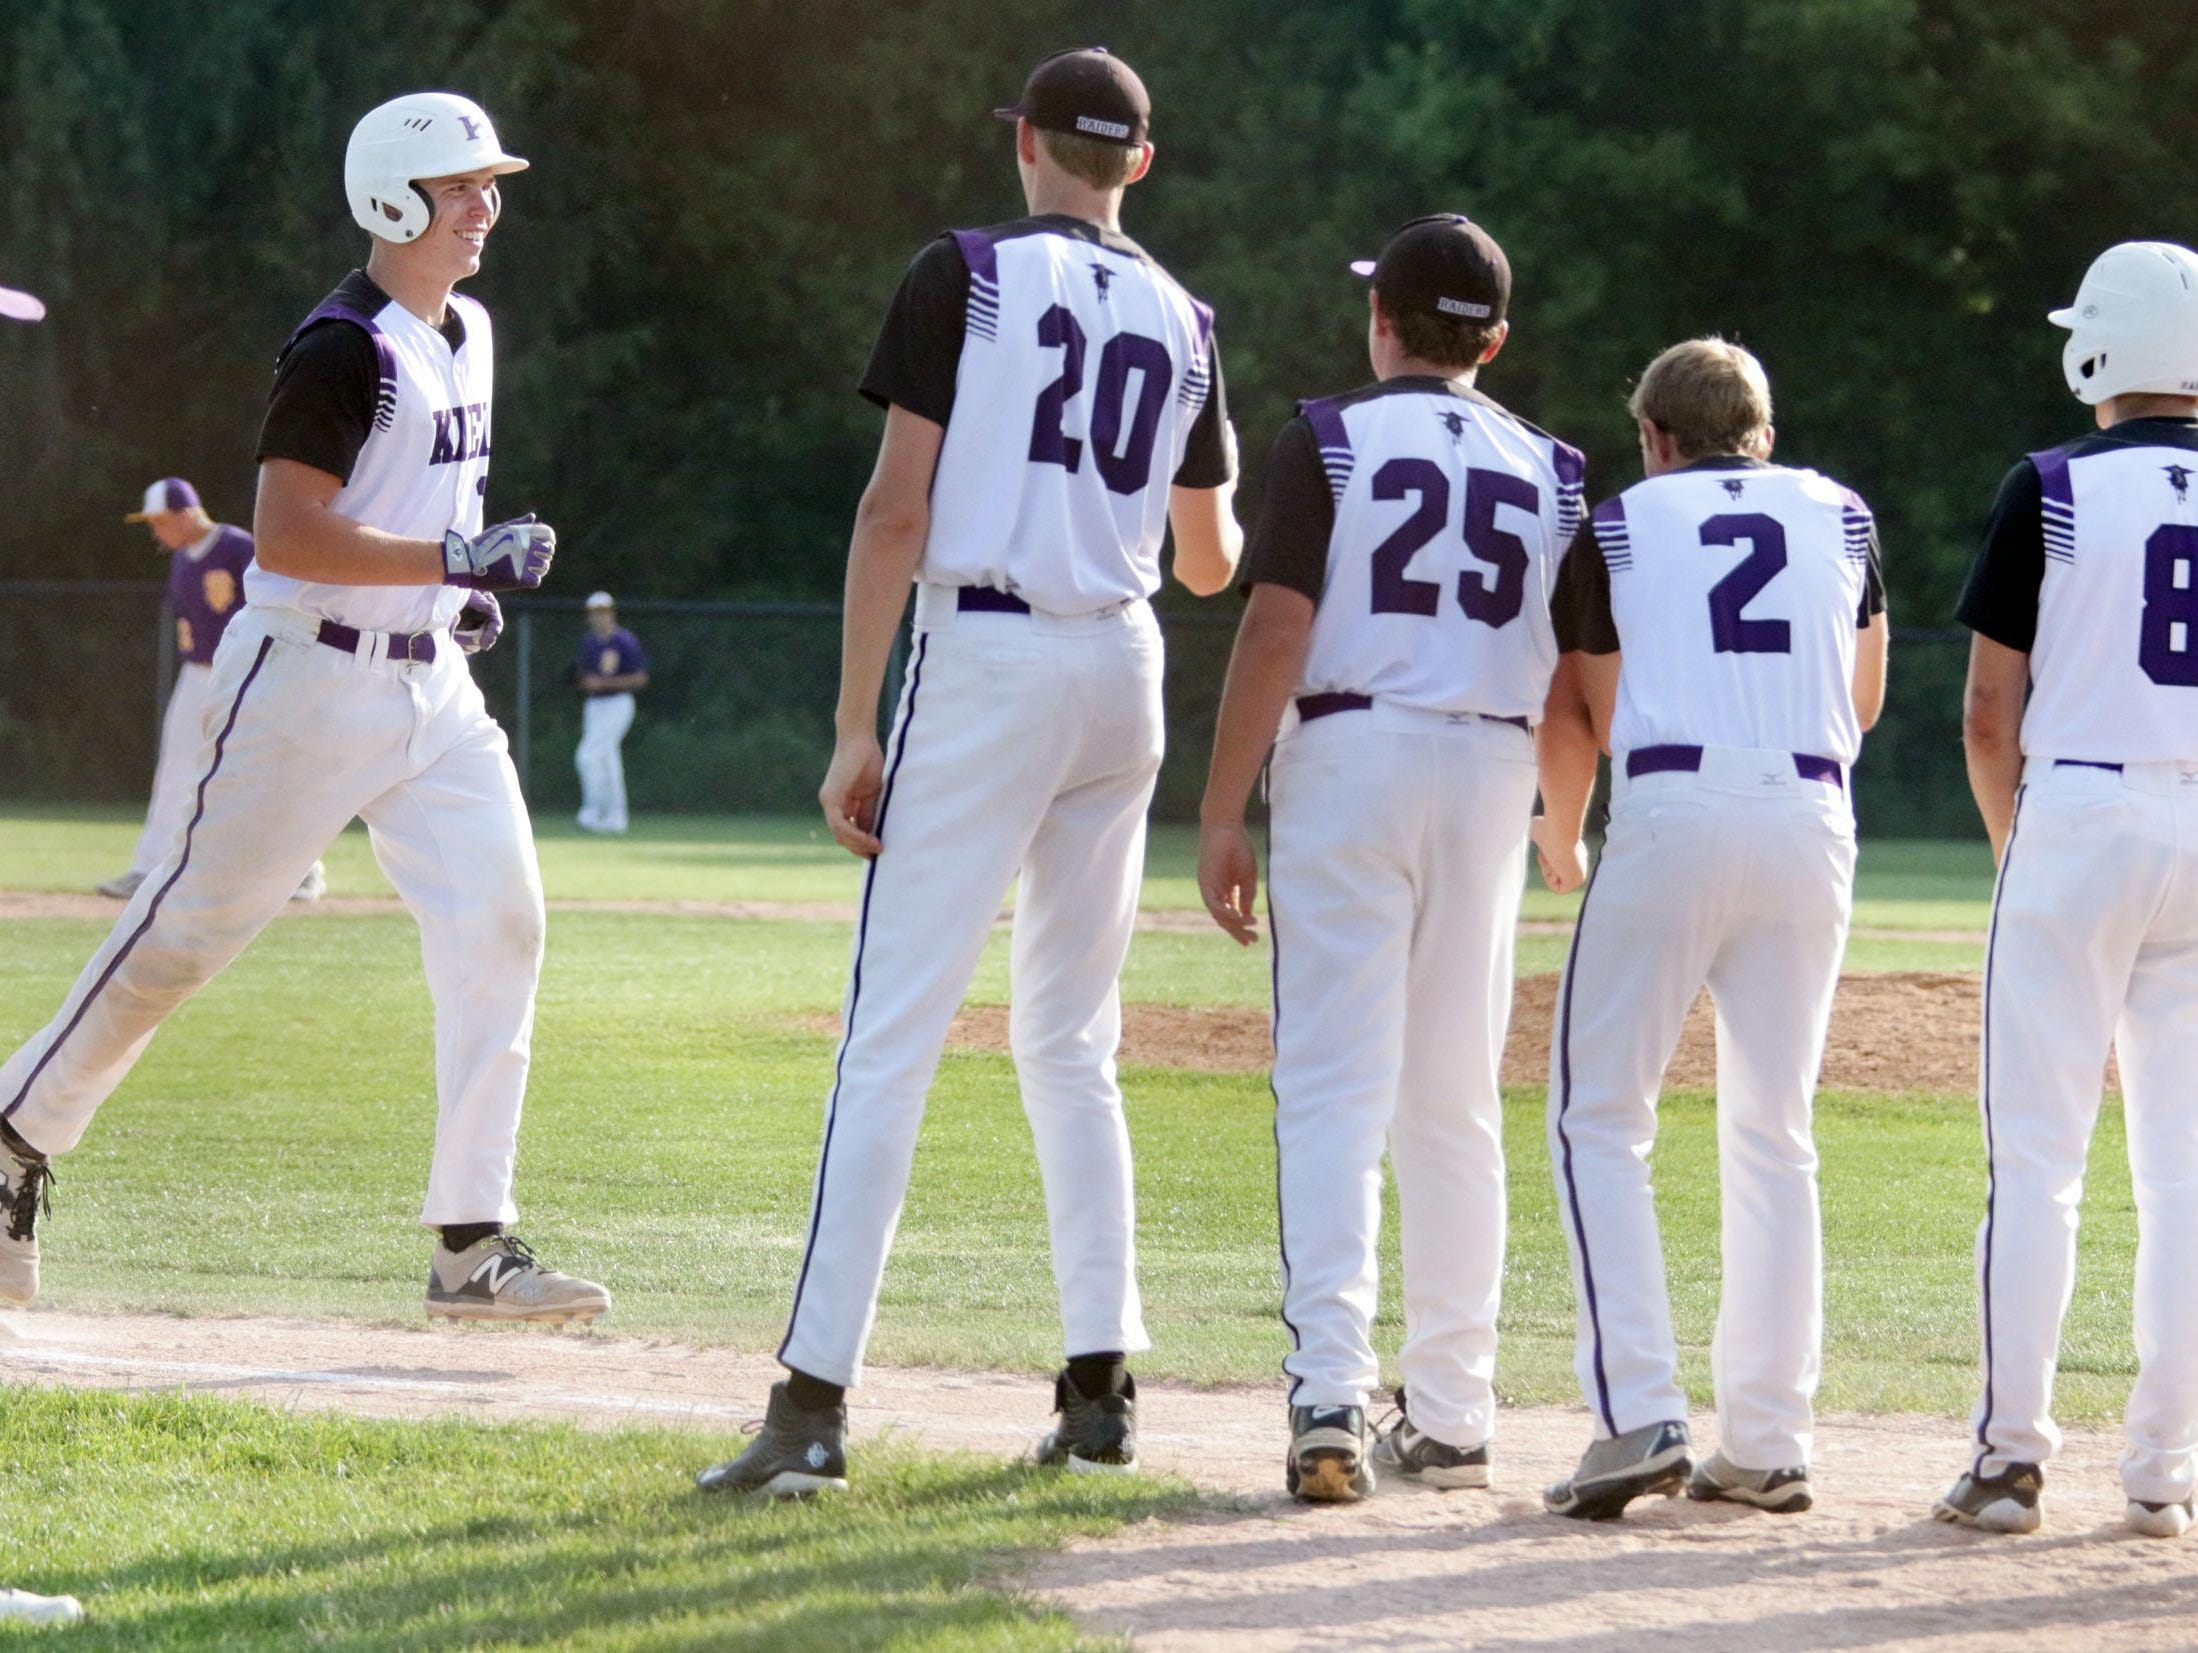 Kiel's Austin Goehring (11) is greeted by teammates after hitting a two-run home run in the fourth inning against Sheboygan Falls on Friday.